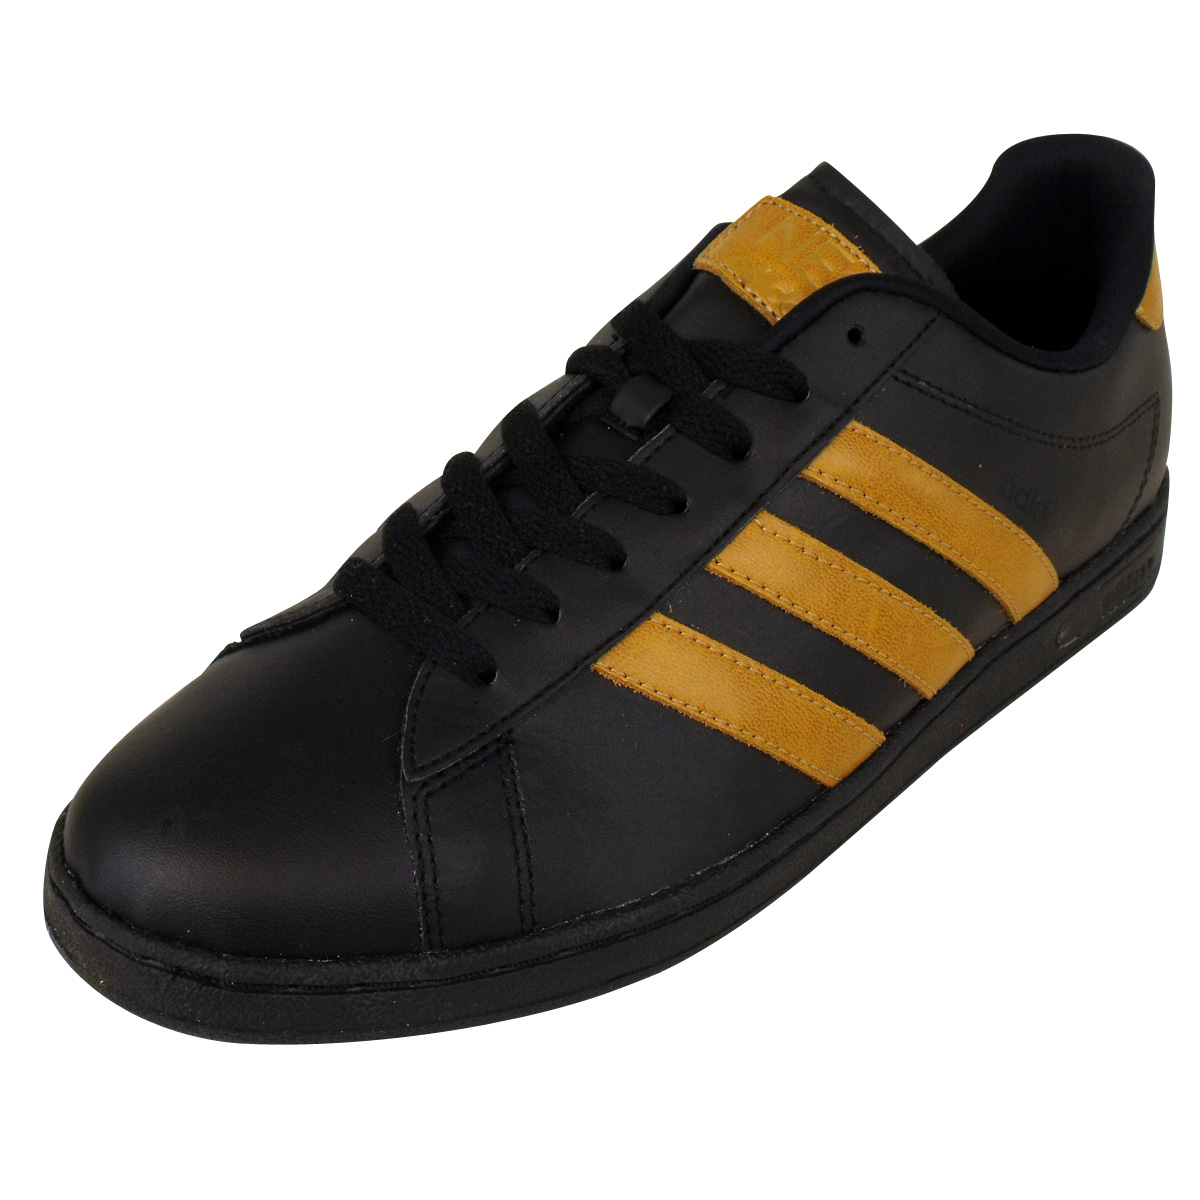 Neo Adidas: Mens Adidas Derby II Neo Label Trainers Black Leather